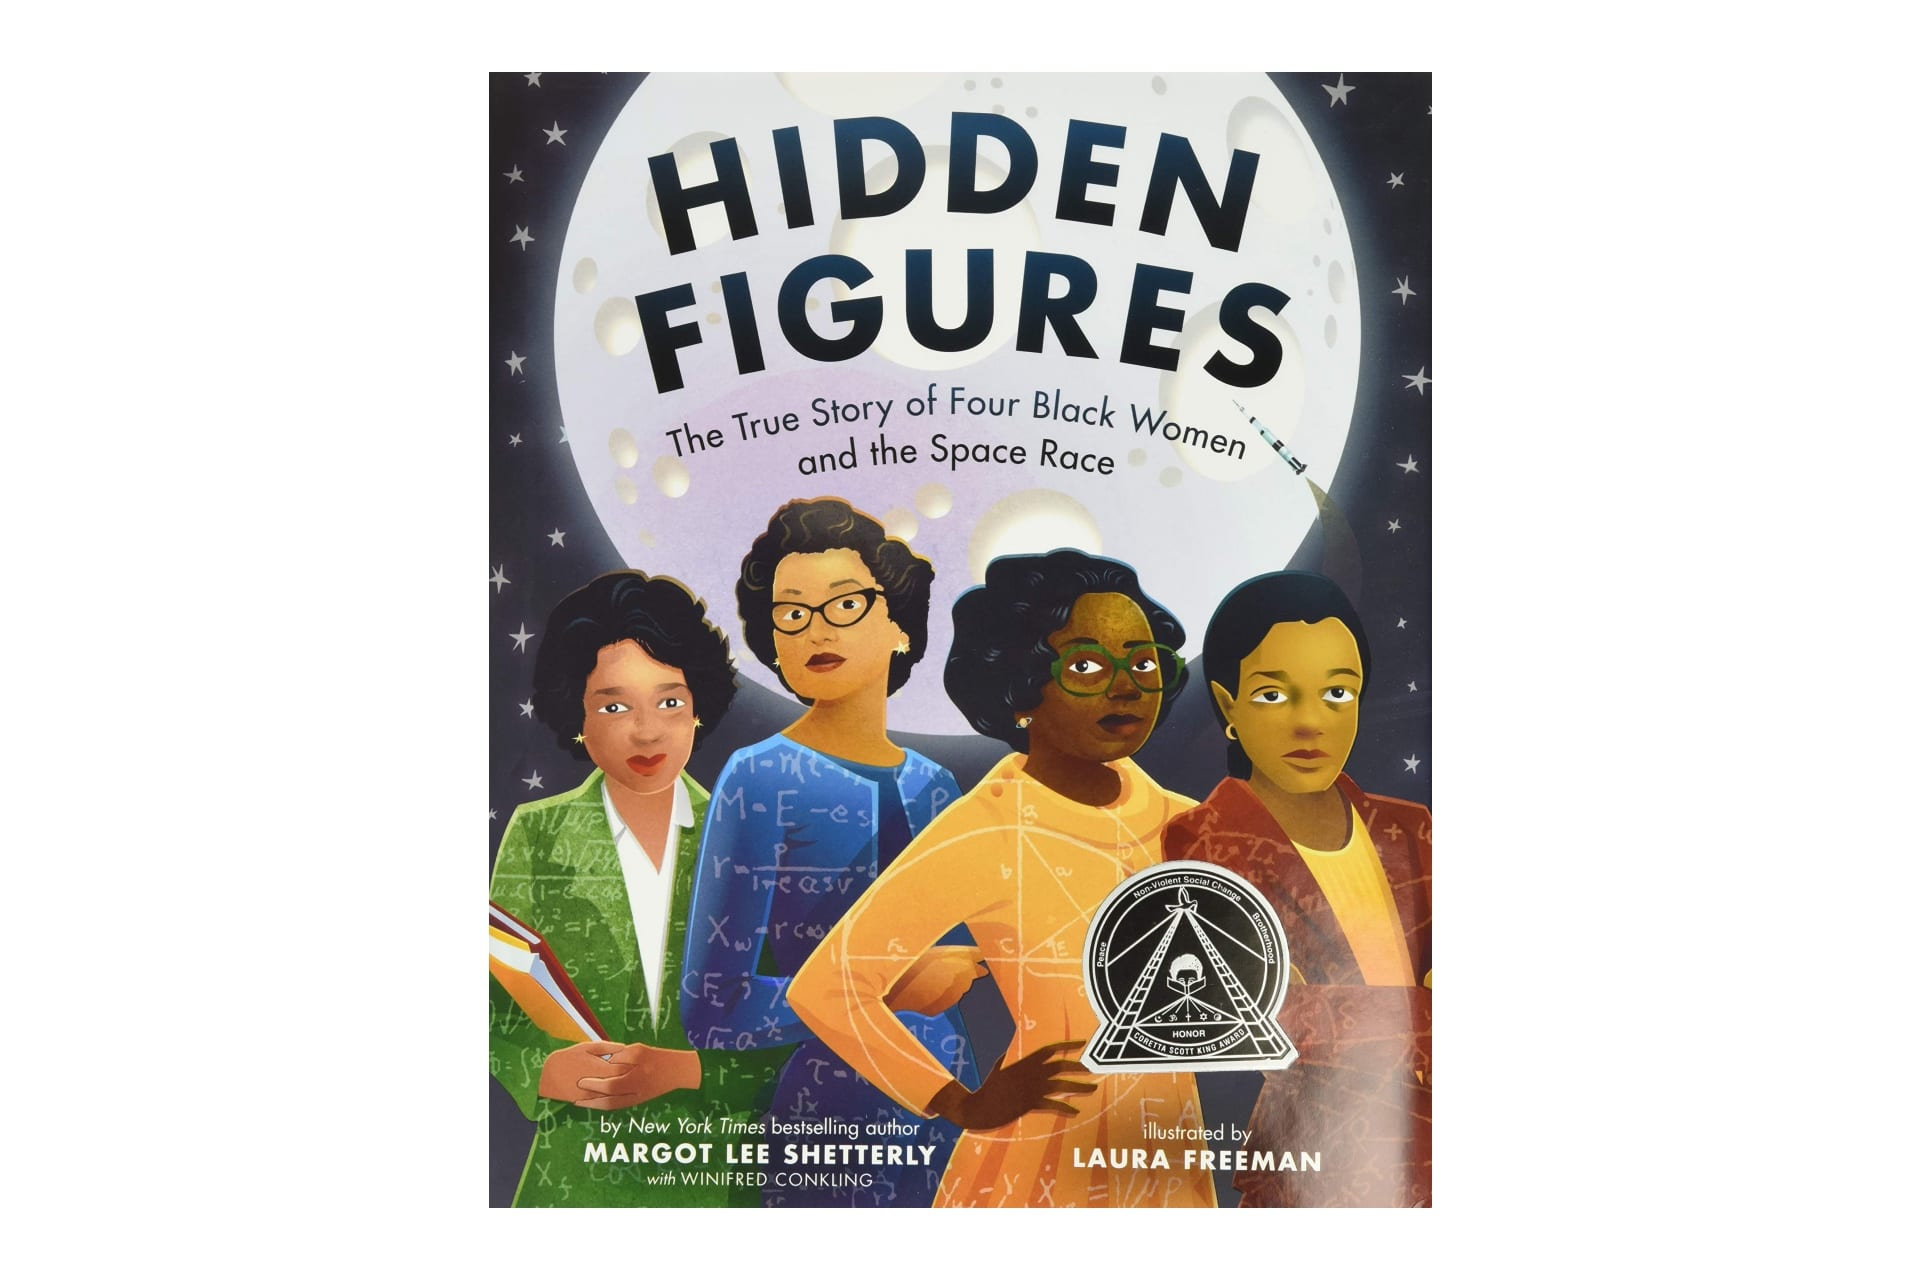 Book cover of four Black women with scientific formulas overlaid on their clothes. The book is called Hidden Figures: The True Story of Four Black Women and the Space Race